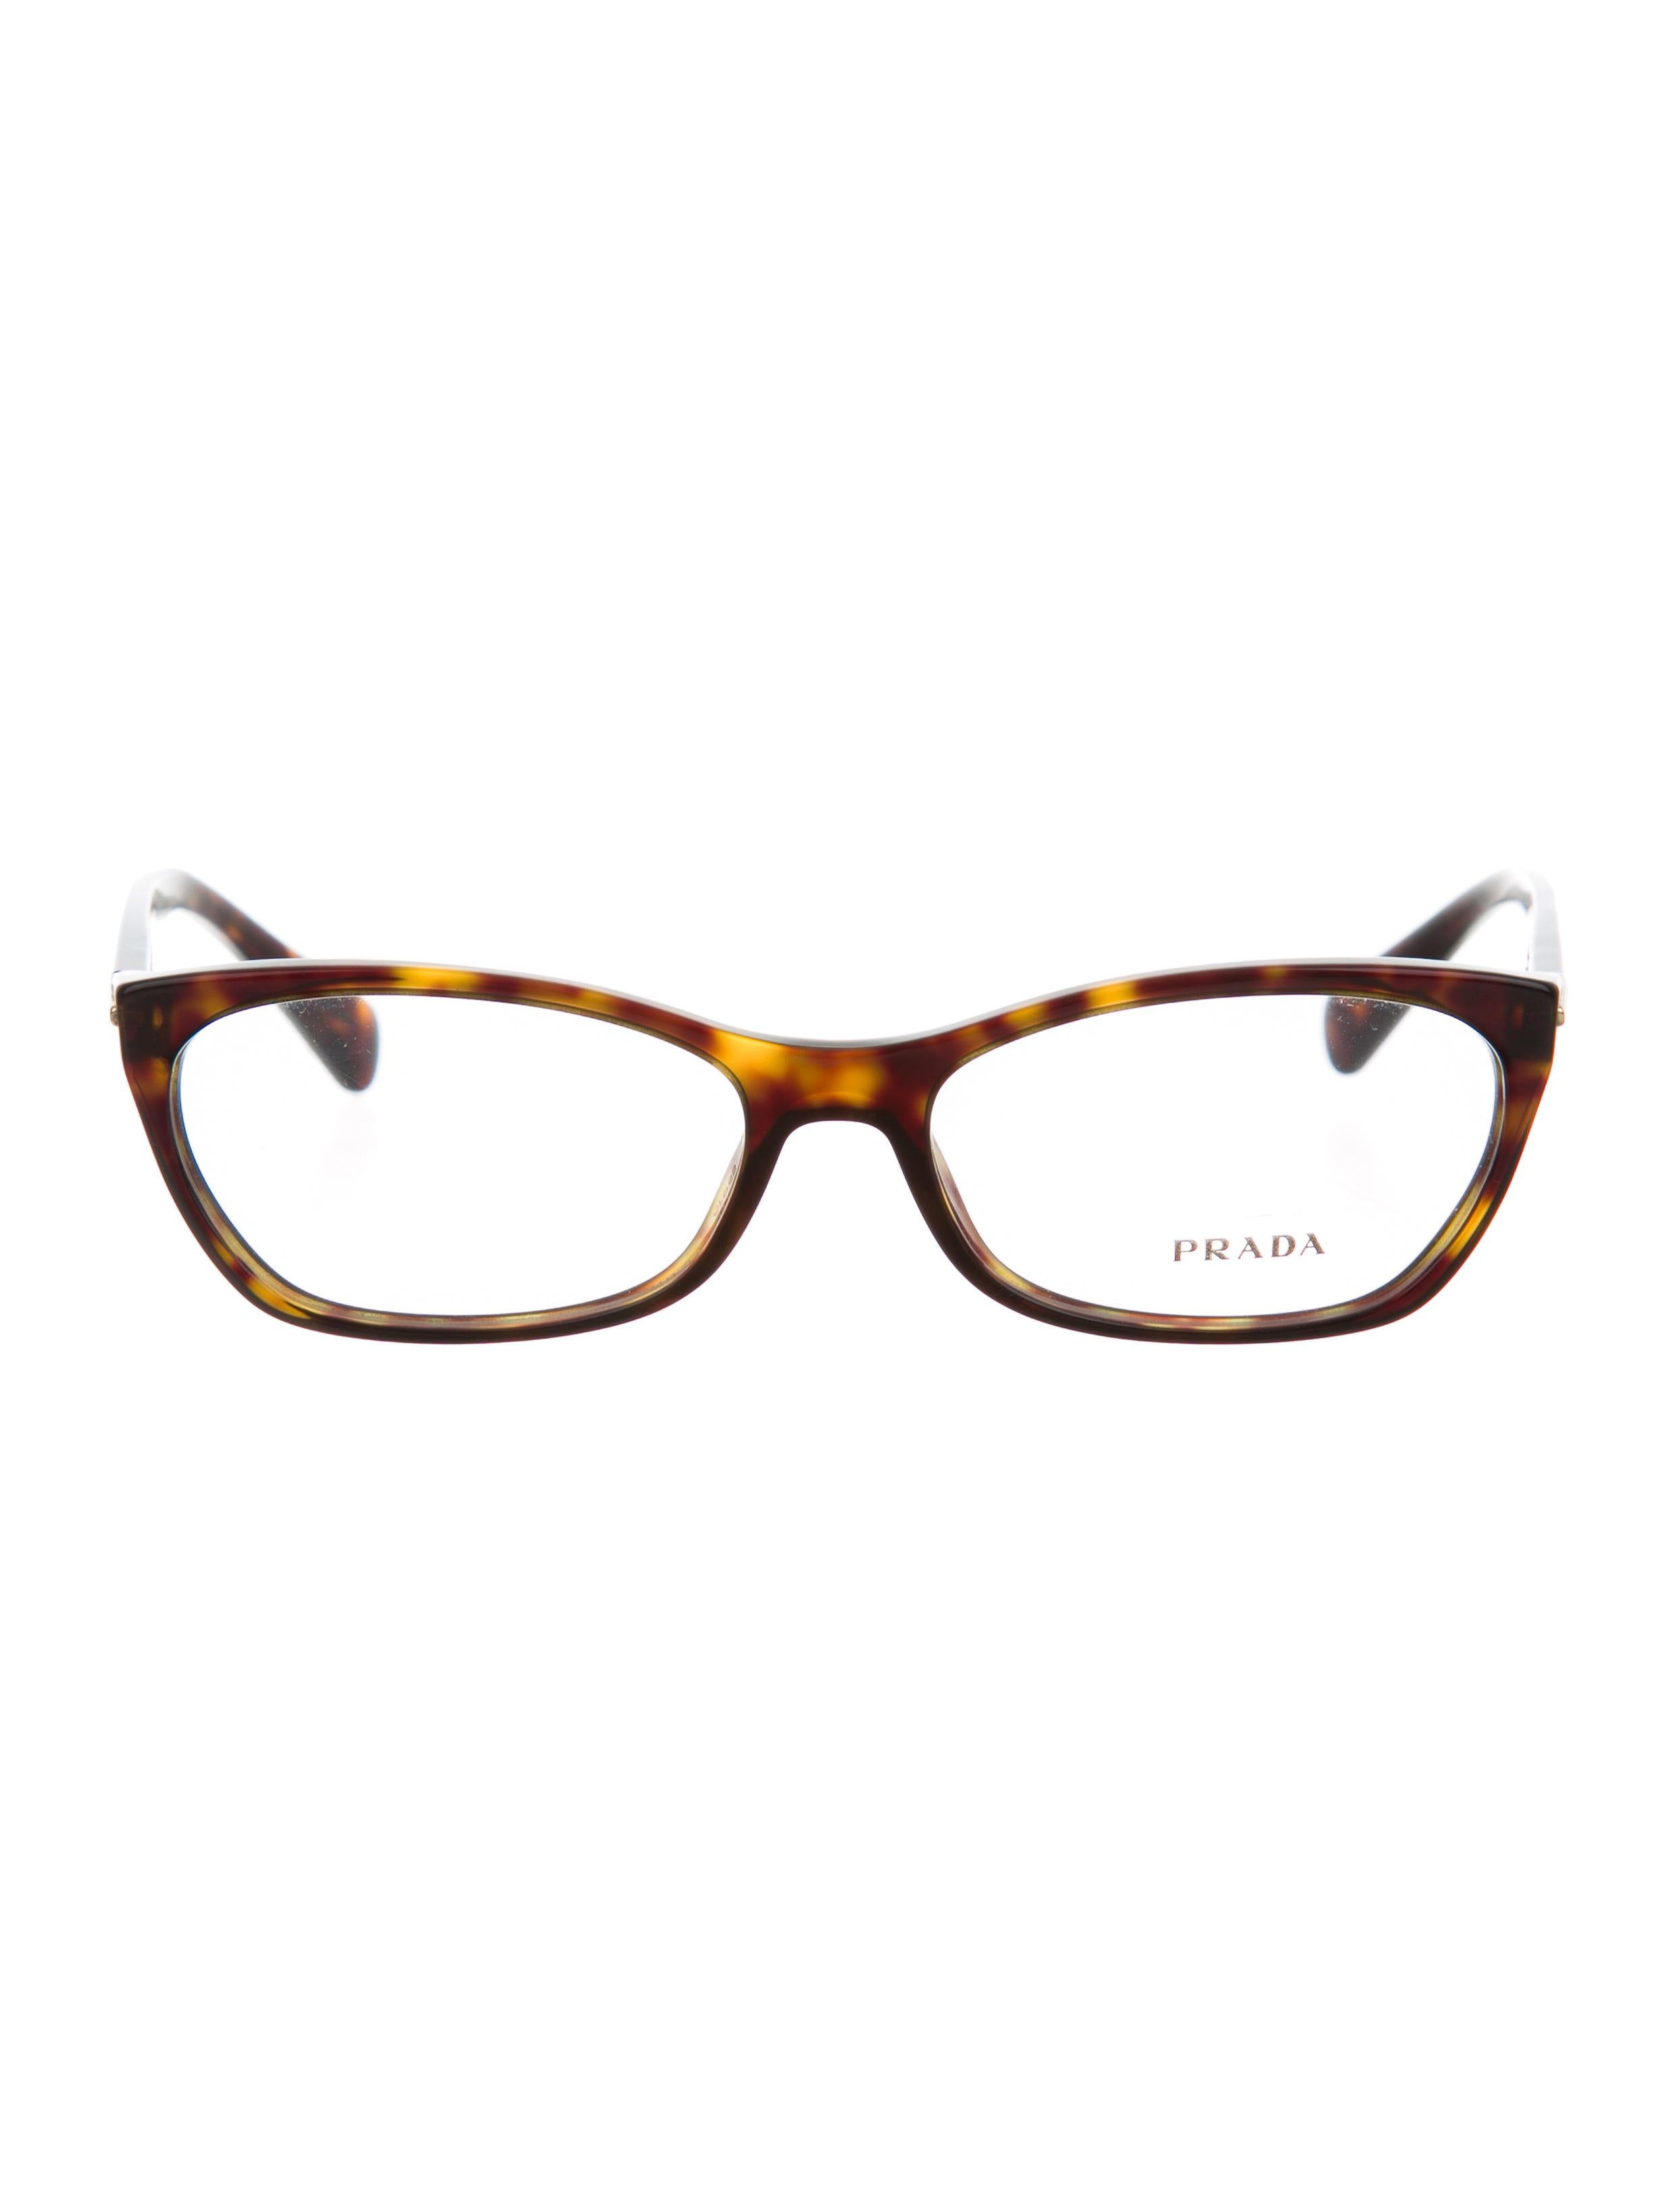 Prada Narrow Tortoiseshell Eyeglasses - Accessories ...